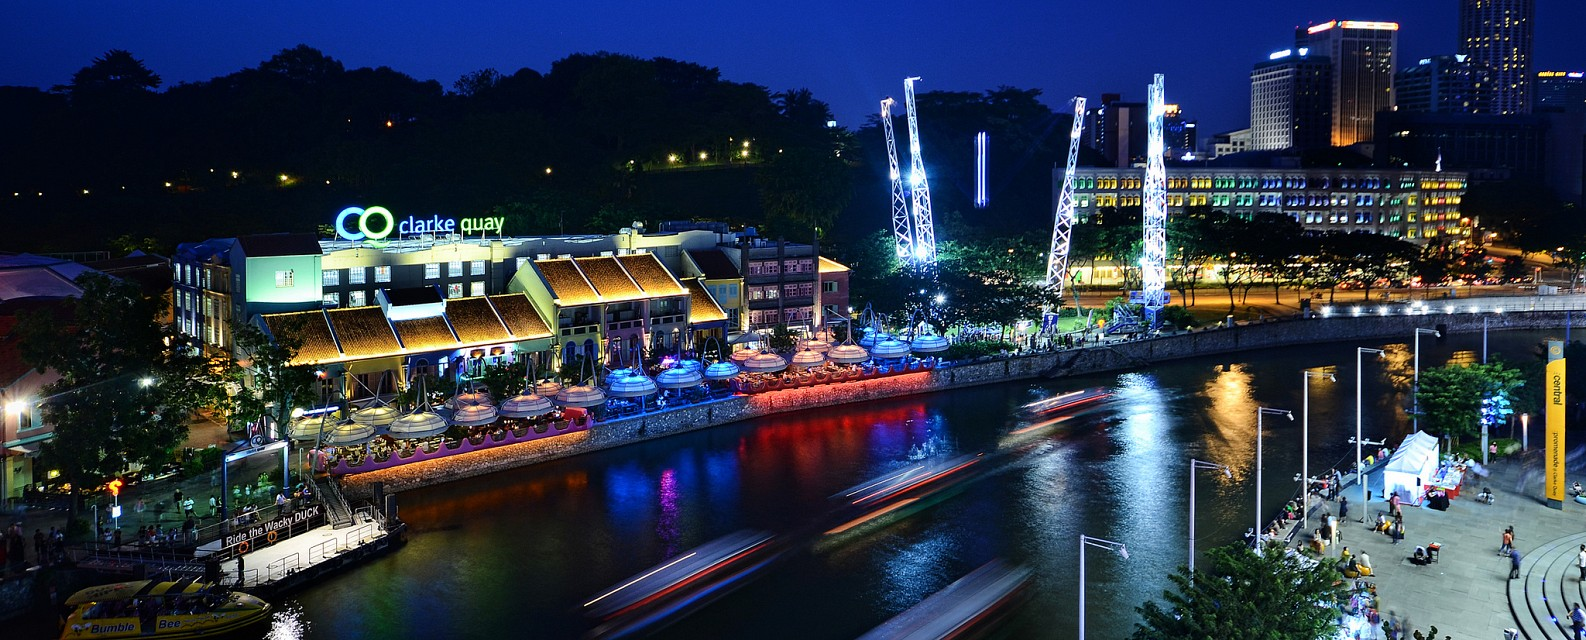 Clarke Quay, the place to be when in